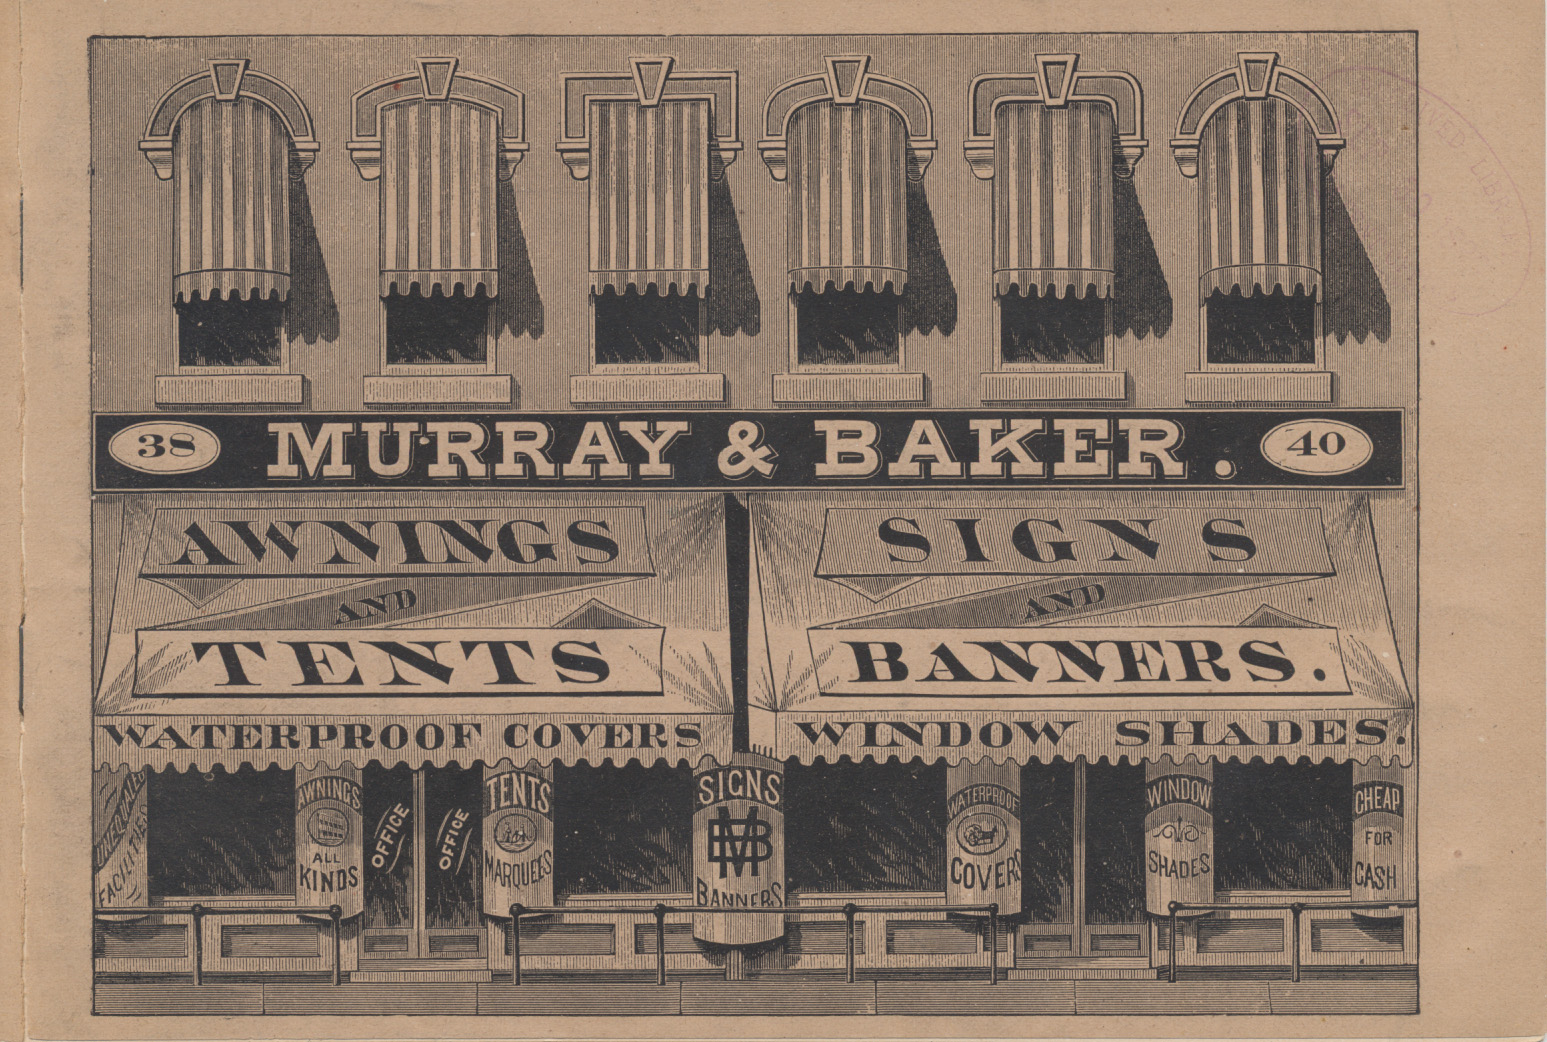 two floor building with awnings over windows and signs on display windows